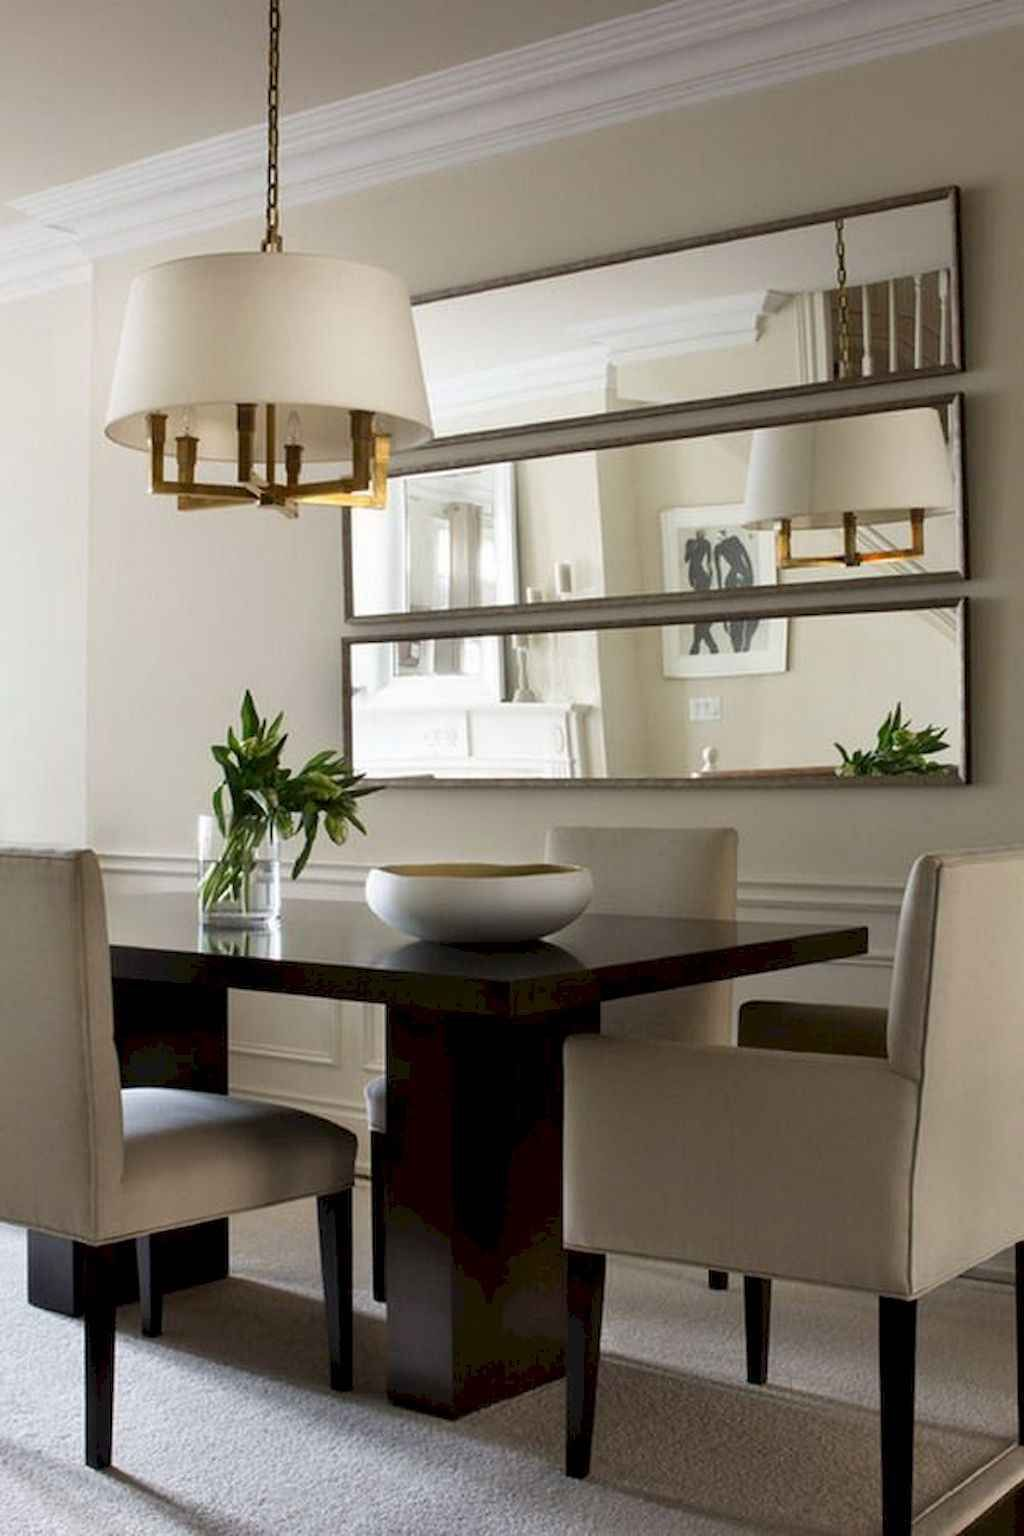 65 Amazing Small Dining Room Design Ideas in 2020 | Dining ...